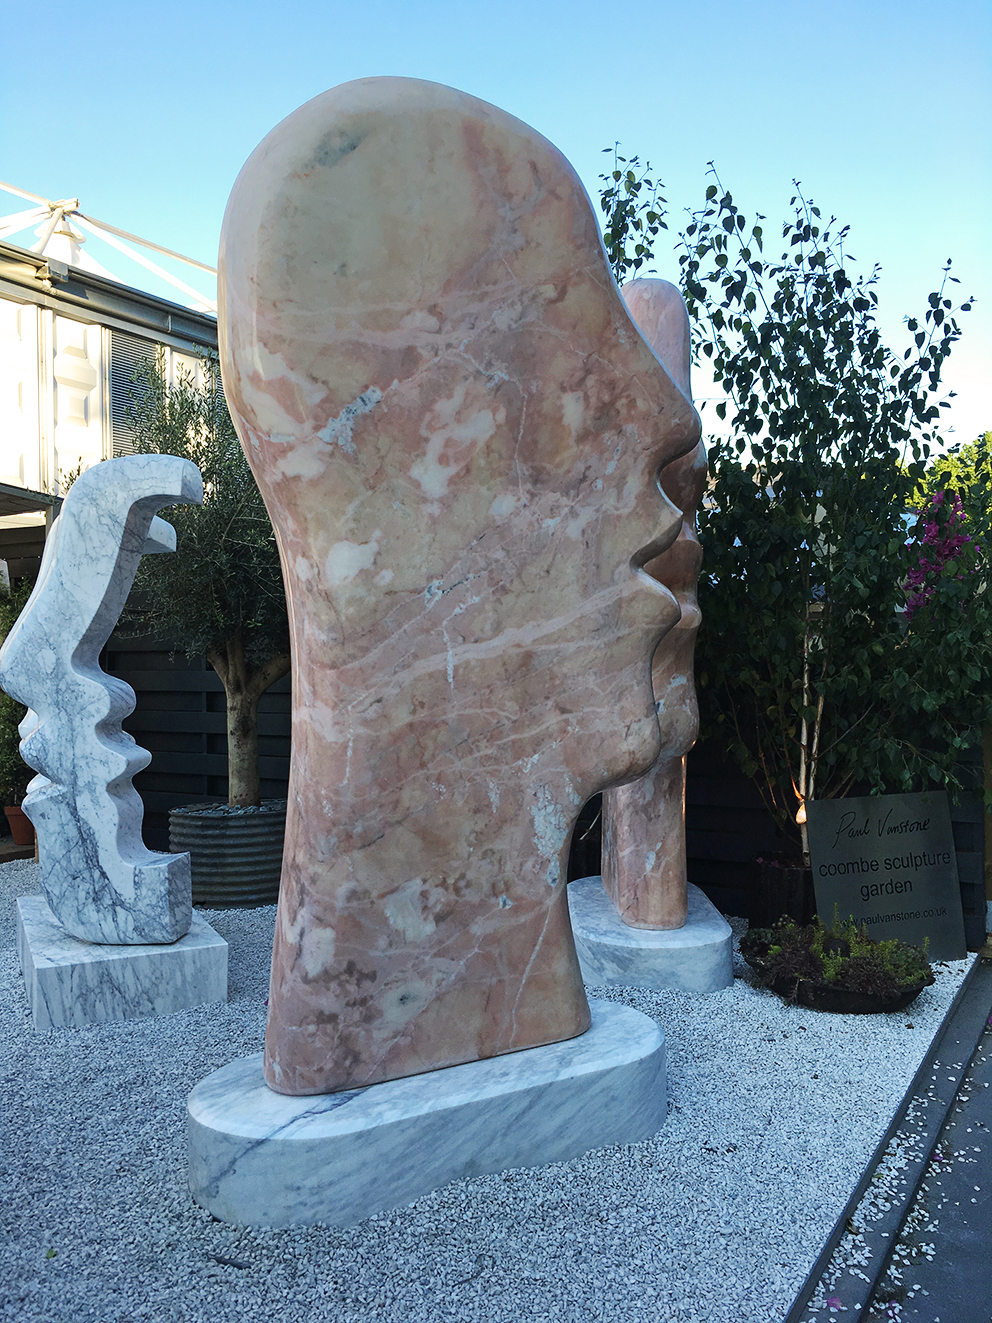 French For Pineapple Blog - RHS Chelsea Flower Show 2017 - Giant Marble Head Sculpture